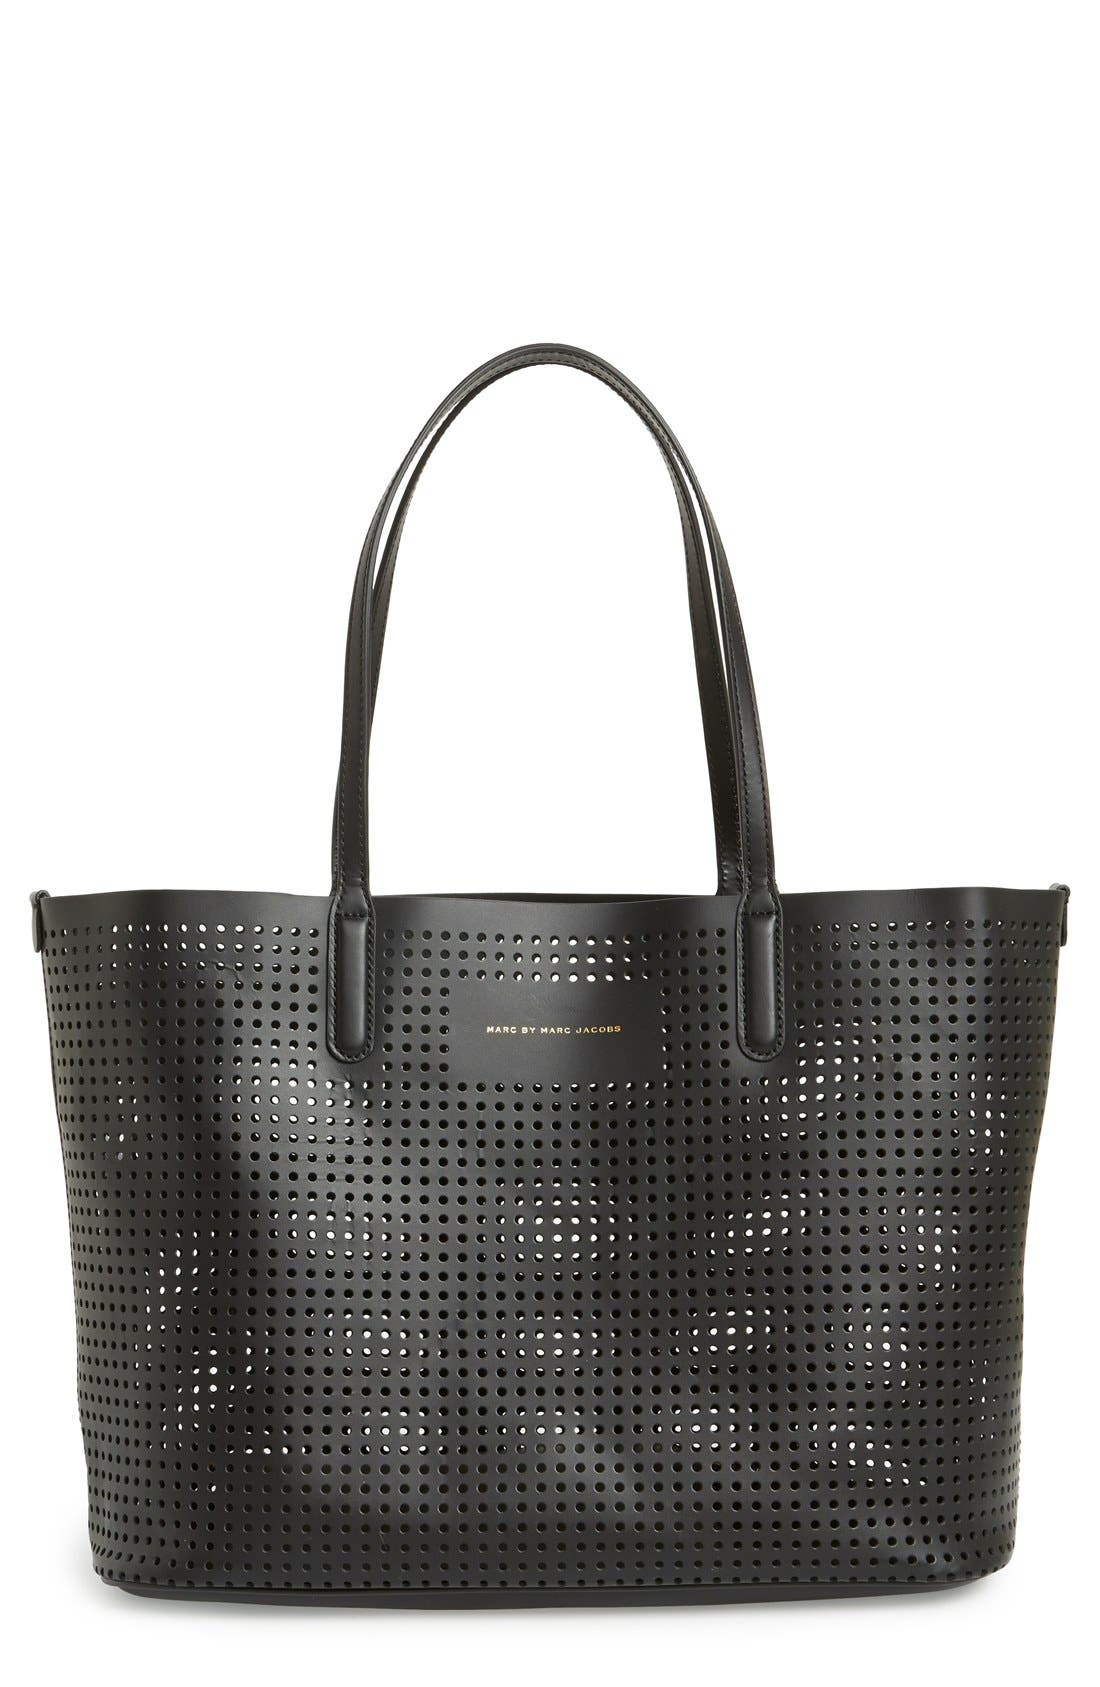 Main Image - MARC BY MARC JACOBS 'Metropolitote 48' Perforated Leather Tote